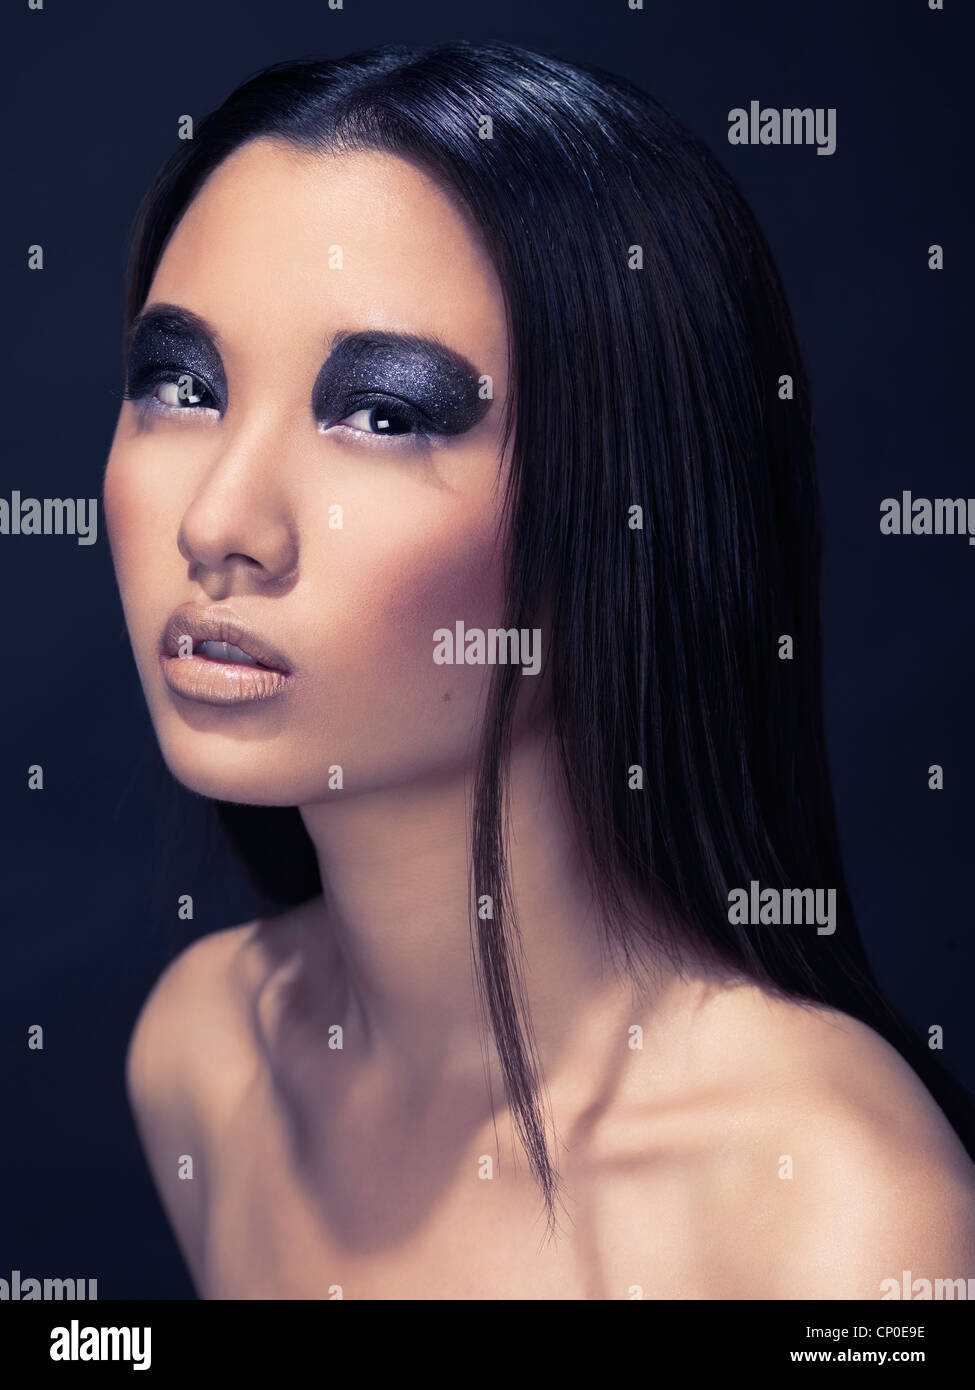 Artistic beauty portrait of an asian woman with sparkling black eyeshadows isolated on dark background - Stock Image